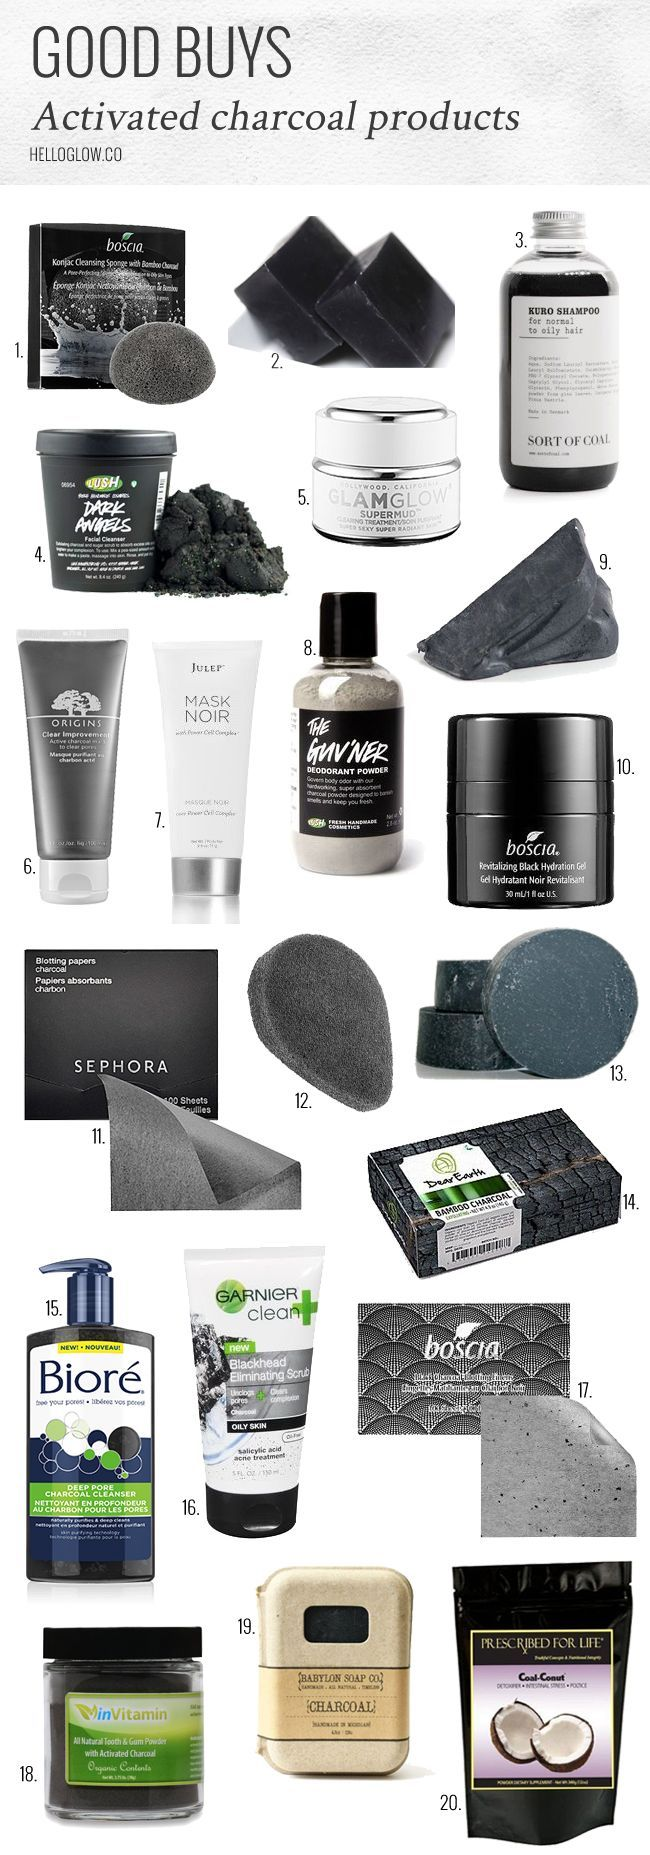 20 Awesome Activated Charcoal Products. Have you heard of activated charcoal and its amazing benef